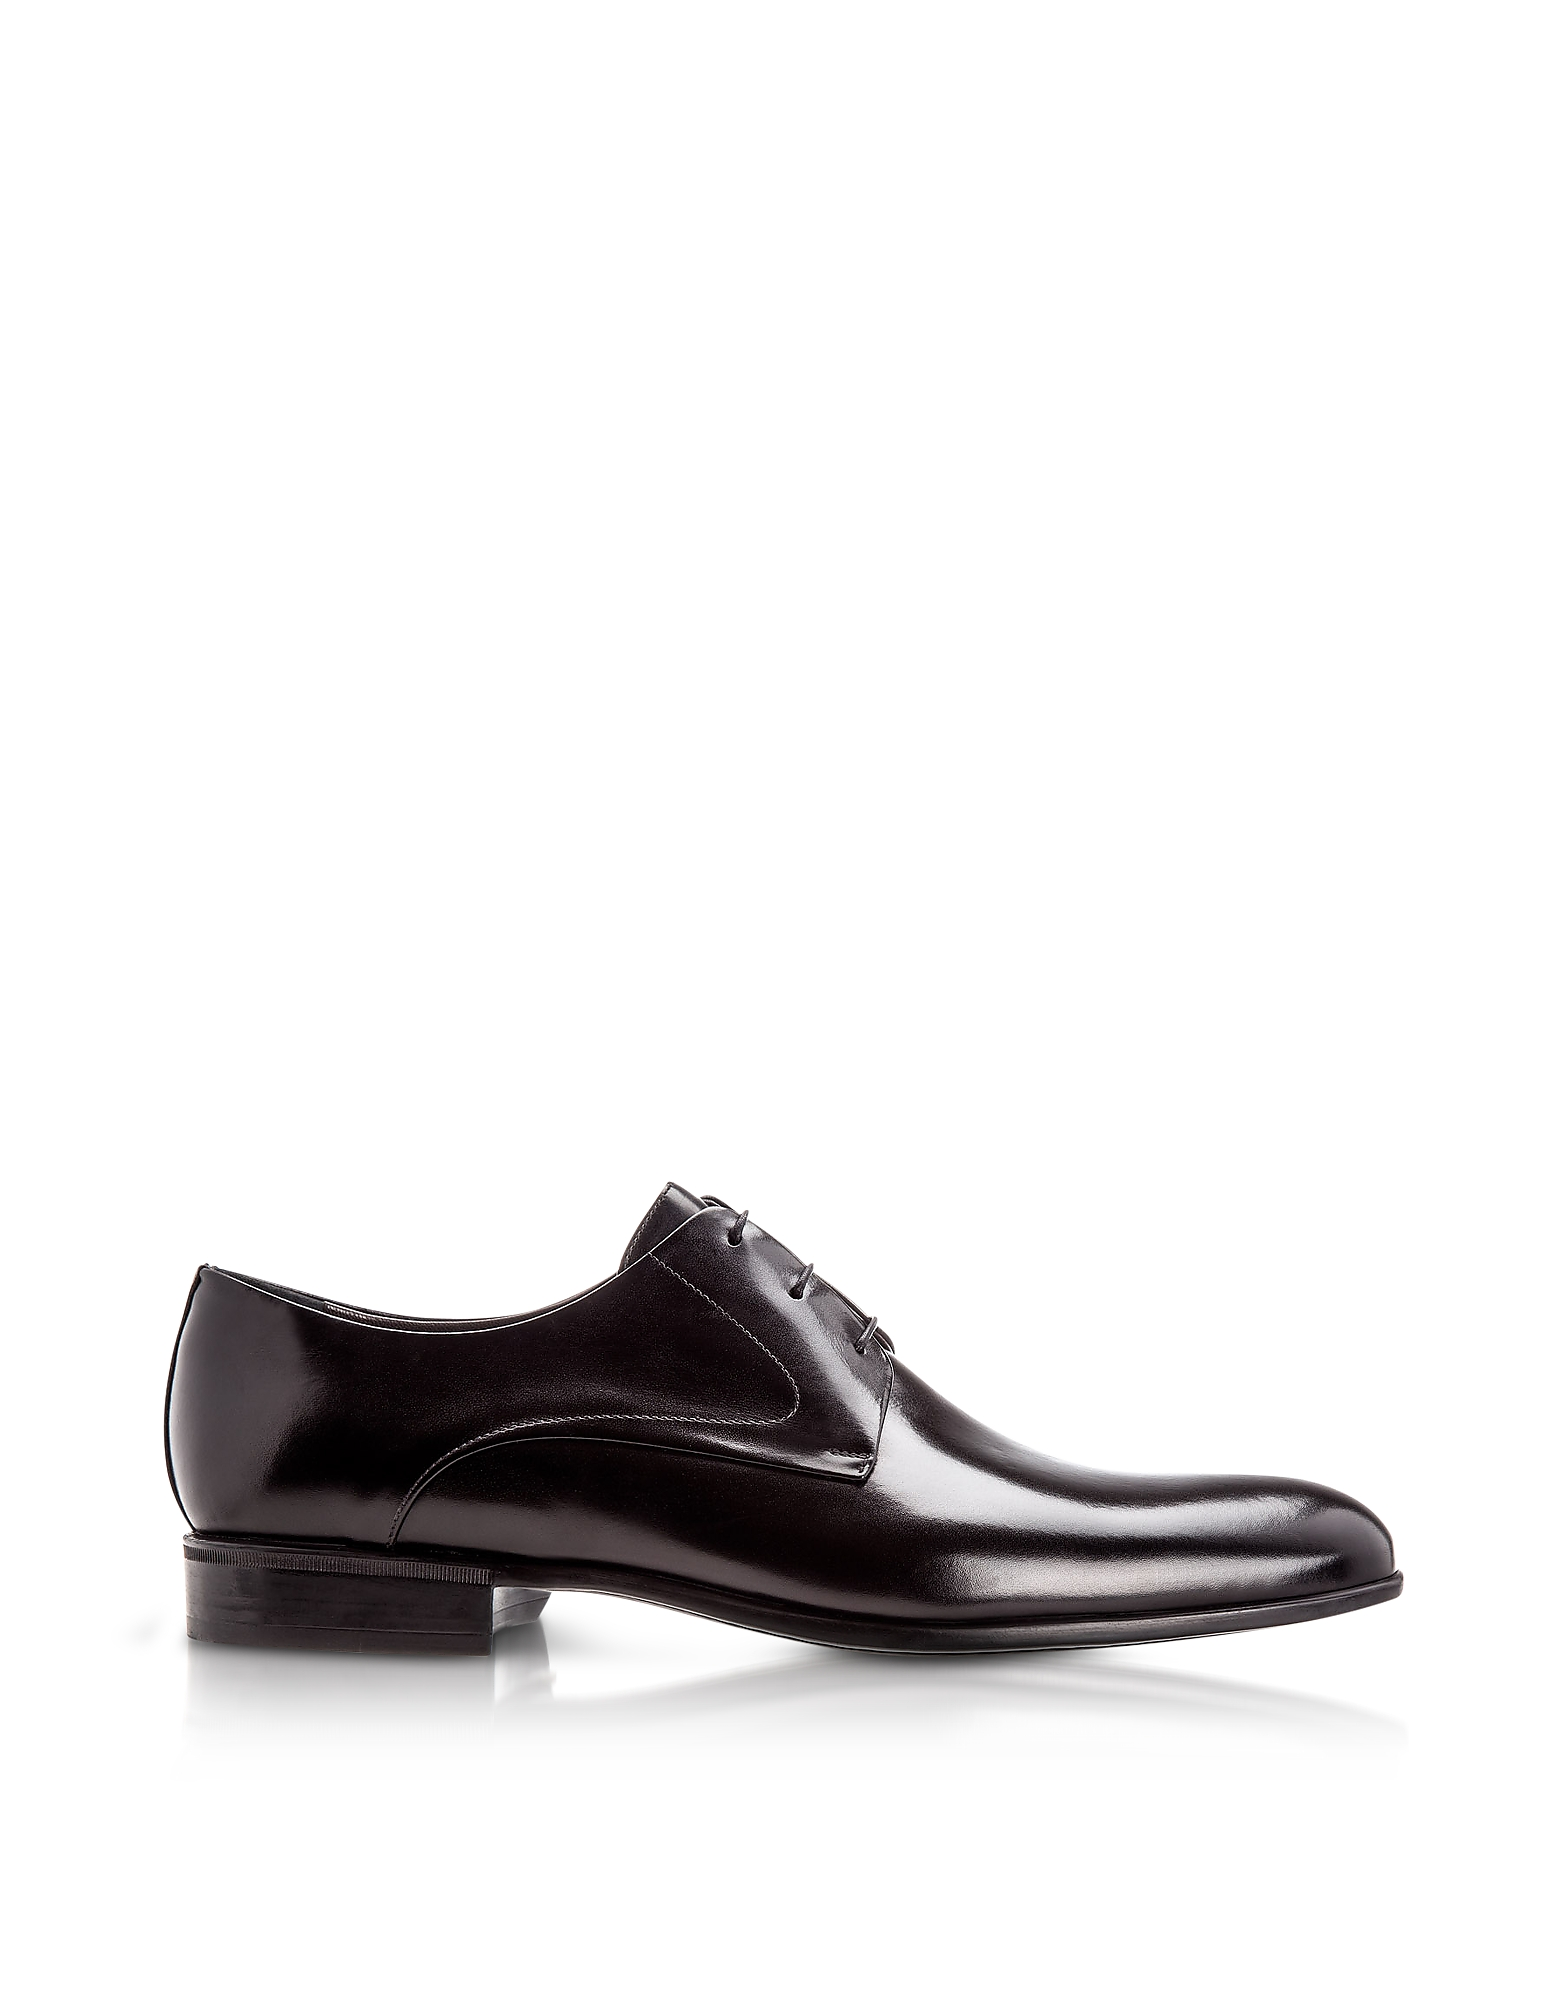 Liverpool Black Calfskin Derby Shoes